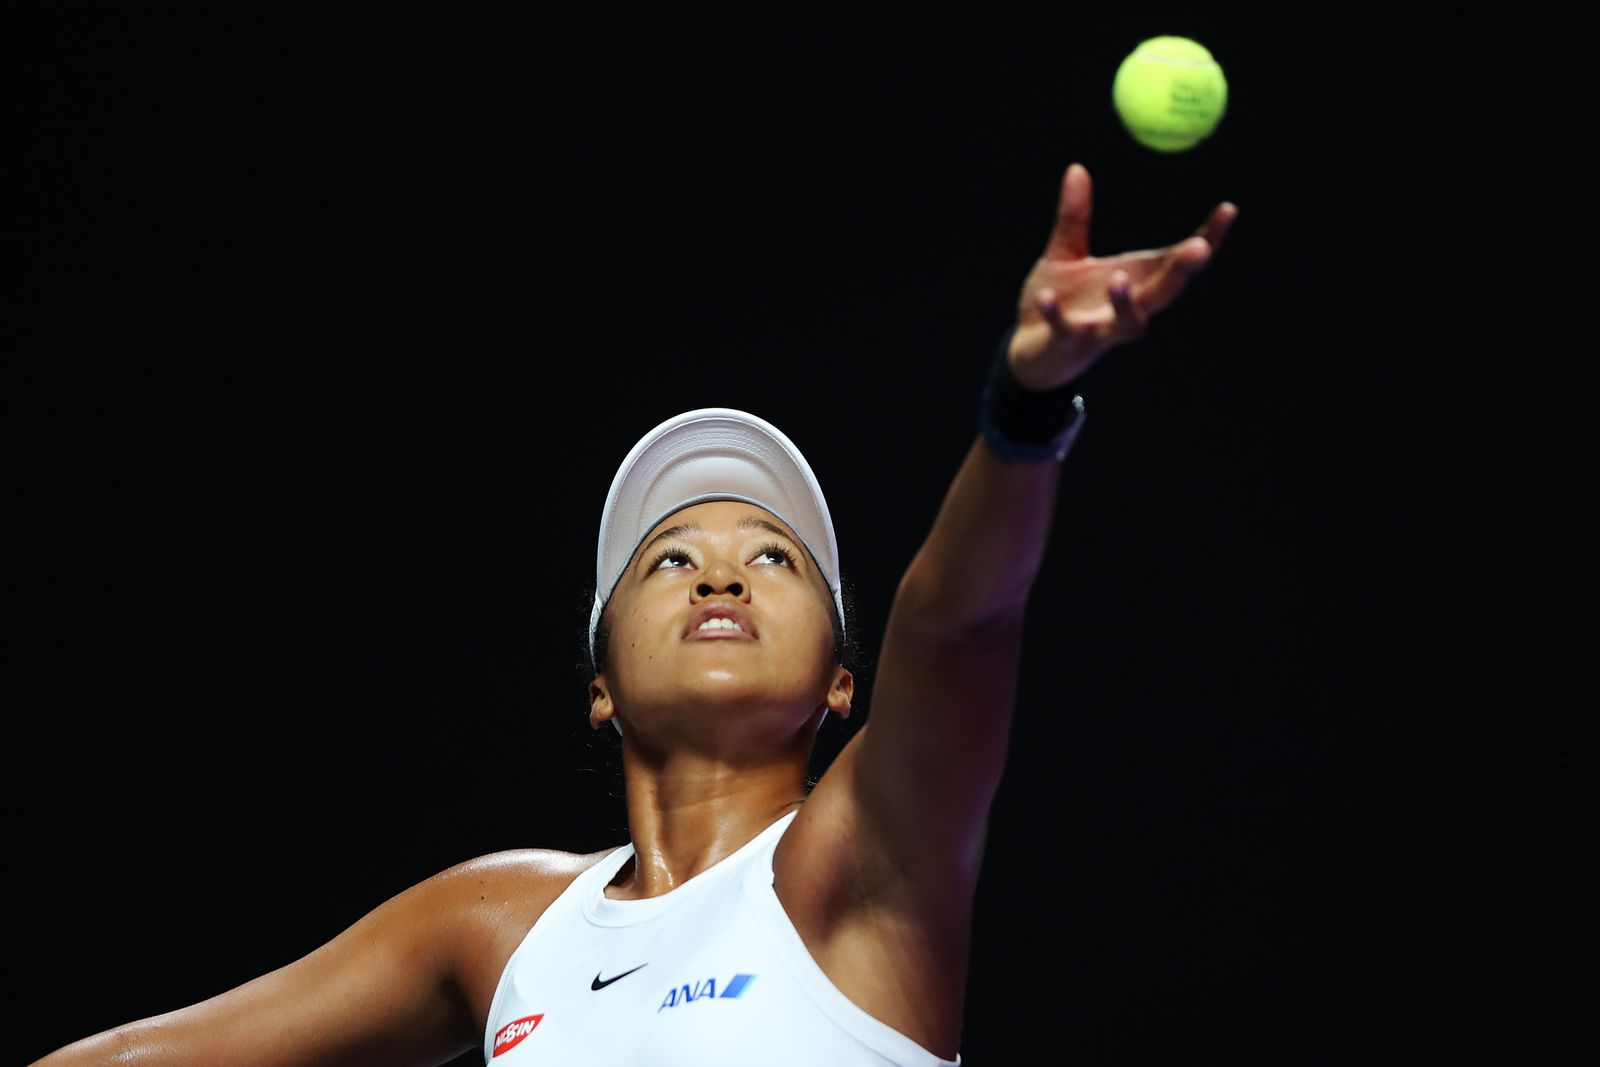 2019 WTA Finals - Day One